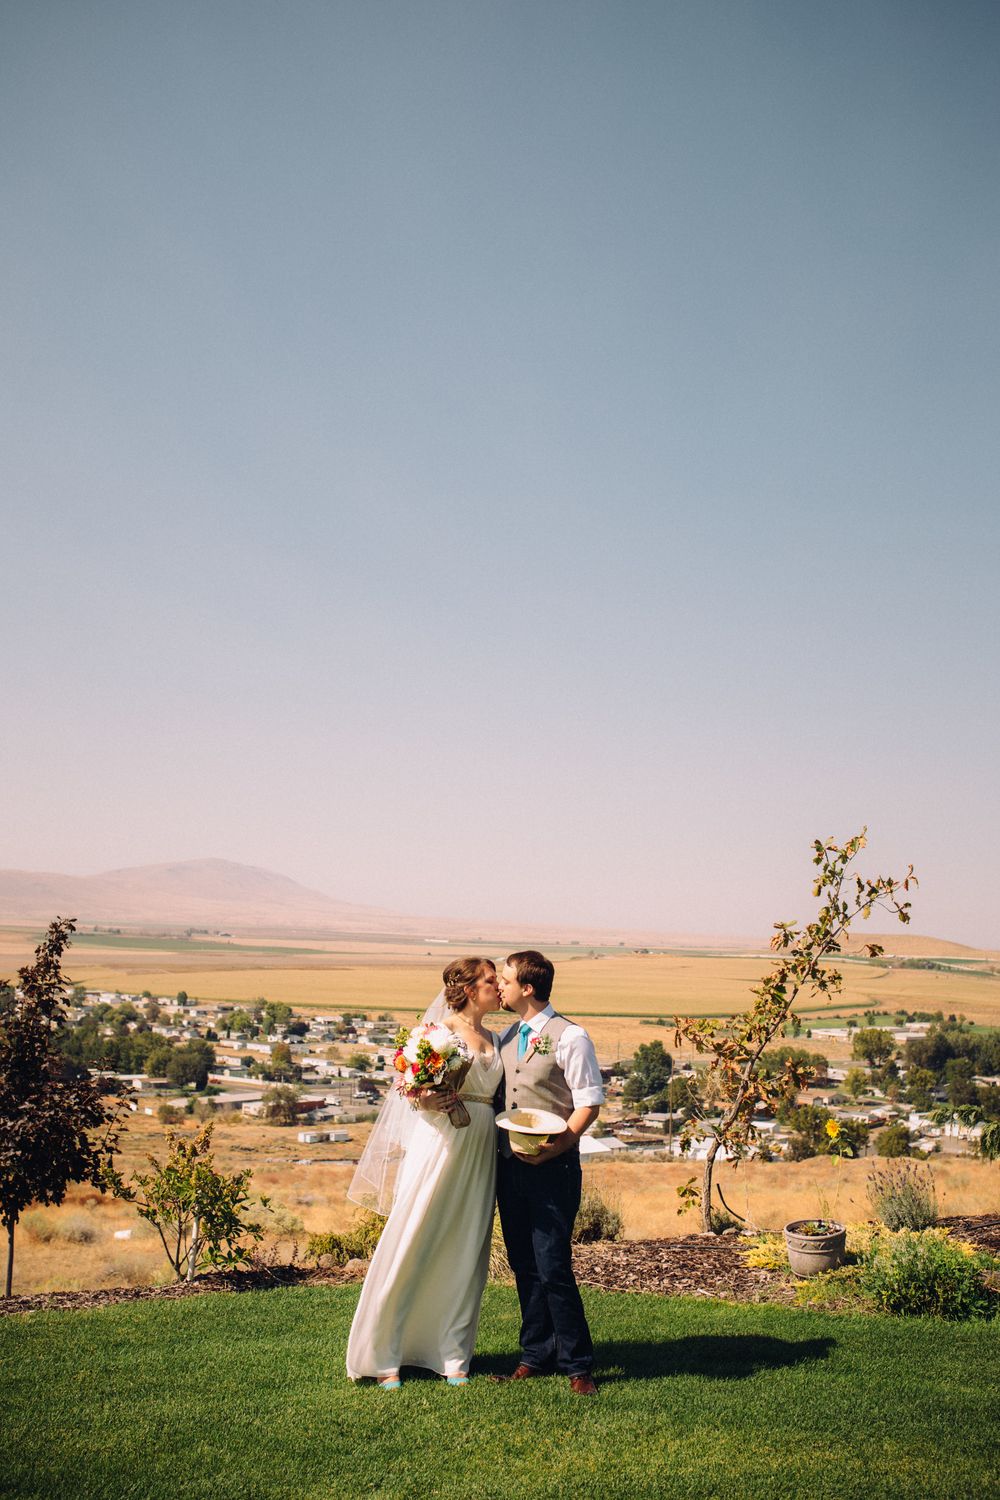 Randy + Laura - Portraits - Eastern Washington Wedding - ARBR Pictures-23.jpg